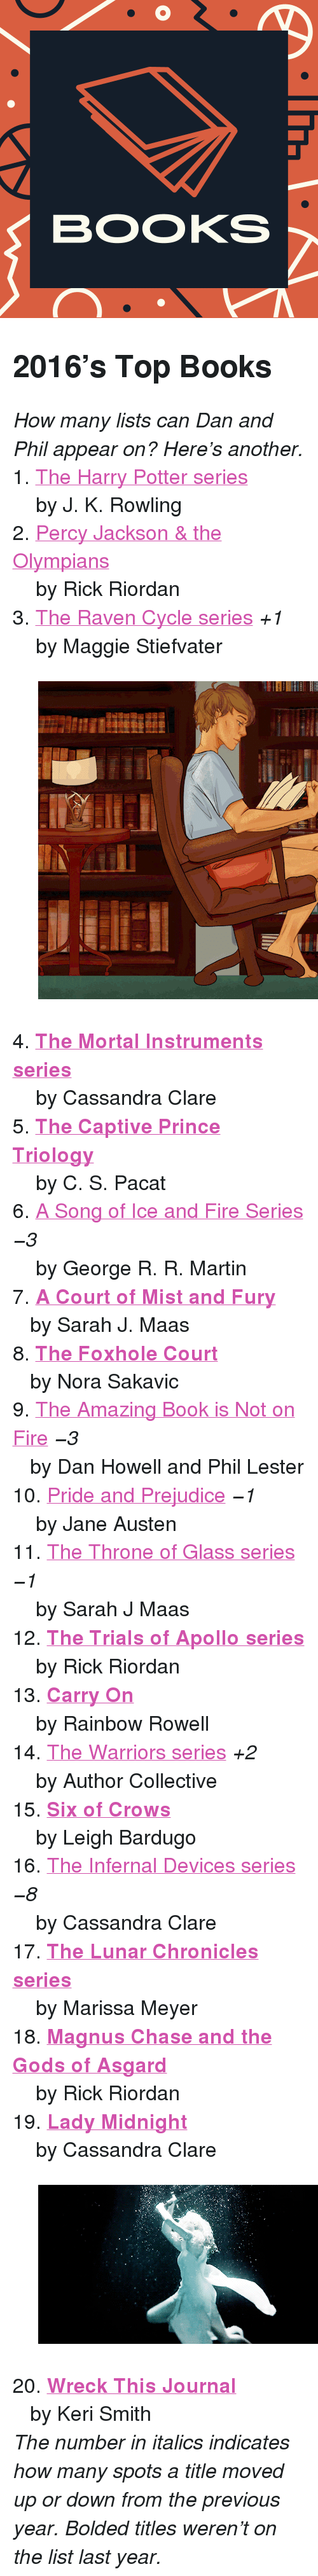 """Books, Fire, and Gif: BOOKS <h2>2016&rsquo;s Top Books</h2><p><i>How many lists can Dan and Phil appear on? Here's another.</i></p><p>1. <a href=""""http://www.tumblr.com/search/harry%20potter"""">The Harry Potter series</a> <br/>  by J. K. Rowling<br/>2. <a href=""""http://www.tumblr.com/search/percy%20jackson"""">Percy Jackson &amp; the Olympians</a><br/>  by Rick Riordan<br/>3. <a href=""""http://www.tumblr.com/search/the%20raven%20cycle"""">The Raven Cycle series</a><i> +1<br/>  </i>by Maggie Stiefvater</p><figure data-orig-width=""""500"""" data-orig-height=""""500"""" data-tumblr-attribution=""""neiljonsten:zcw7WwKZJC9FRP2TLUmObQ:Zjisjk2BMGBxz"""" class=""""tmblr-full""""><img src=""""https://78.media.tumblr.com/659d38b8edf1699269f6b4c30d35aee5/tumblr_ocn6v7OvZB1utd8mmo1_r1_500.gif"""" alt=""""image"""" data-orig-width=""""500"""" data-orig-height=""""500""""/></figure><p>4. <b><a href=""""http://www.tumblr.com/search/the%20mortal%20instruments"""">The Mortal Instruments series</a></b> <br/>  by Cassandra Clare<br/>5. <b><a href=""""http://www.tumblr.com/search/captive%20prince"""">The Captive Prince Triology</a><br/></b>  by C. S. Pacat<br/>6. <a href=""""http://www.tumblr.com/search/a%20song%20of%20ice%20and%20fire"""">A Song of Ice and Fire Series</a><i> −3<br/> </i>by George R. R. Martin<br/>7. <b><a href=""""http://www.tumblr.com/search/acomaf"""">A Court of Mist and Fury</a><br/></b> by Sarah J. Maas<br/>8. <b><a href=""""http://www.tumblr.com/search/the%20foxhole%20court"""">The Foxhole Court</a><br/></b> by Nora Sakavic<br/>9. <a href=""""http://www.tumblr.com/search/tabinof"""">The Amazing Book is Not on Fire</a><i> −3<br/> </i>by Dan Howell and Phil Lester<br/>10. <a href=""""http://www.tumblr.com/search/pride%20and%20prejudice"""">Pride and Prejudice</a><i> −1<br/>  </i>by Jane Austen<br/>11. <a href=""""http://www.tumblr.com/search/throne%20of%20glass"""">The Throne of Glass series</a><i> −1<br/>  </i>by Sarah J Maas<br/>12. <b><a href=""""http://www.tumblr.com/search/trials%20of%20apollo"""">The Trials of Apollo series</a><br/> </b>by Rick Riordan<br/>13. <b><a hre"""